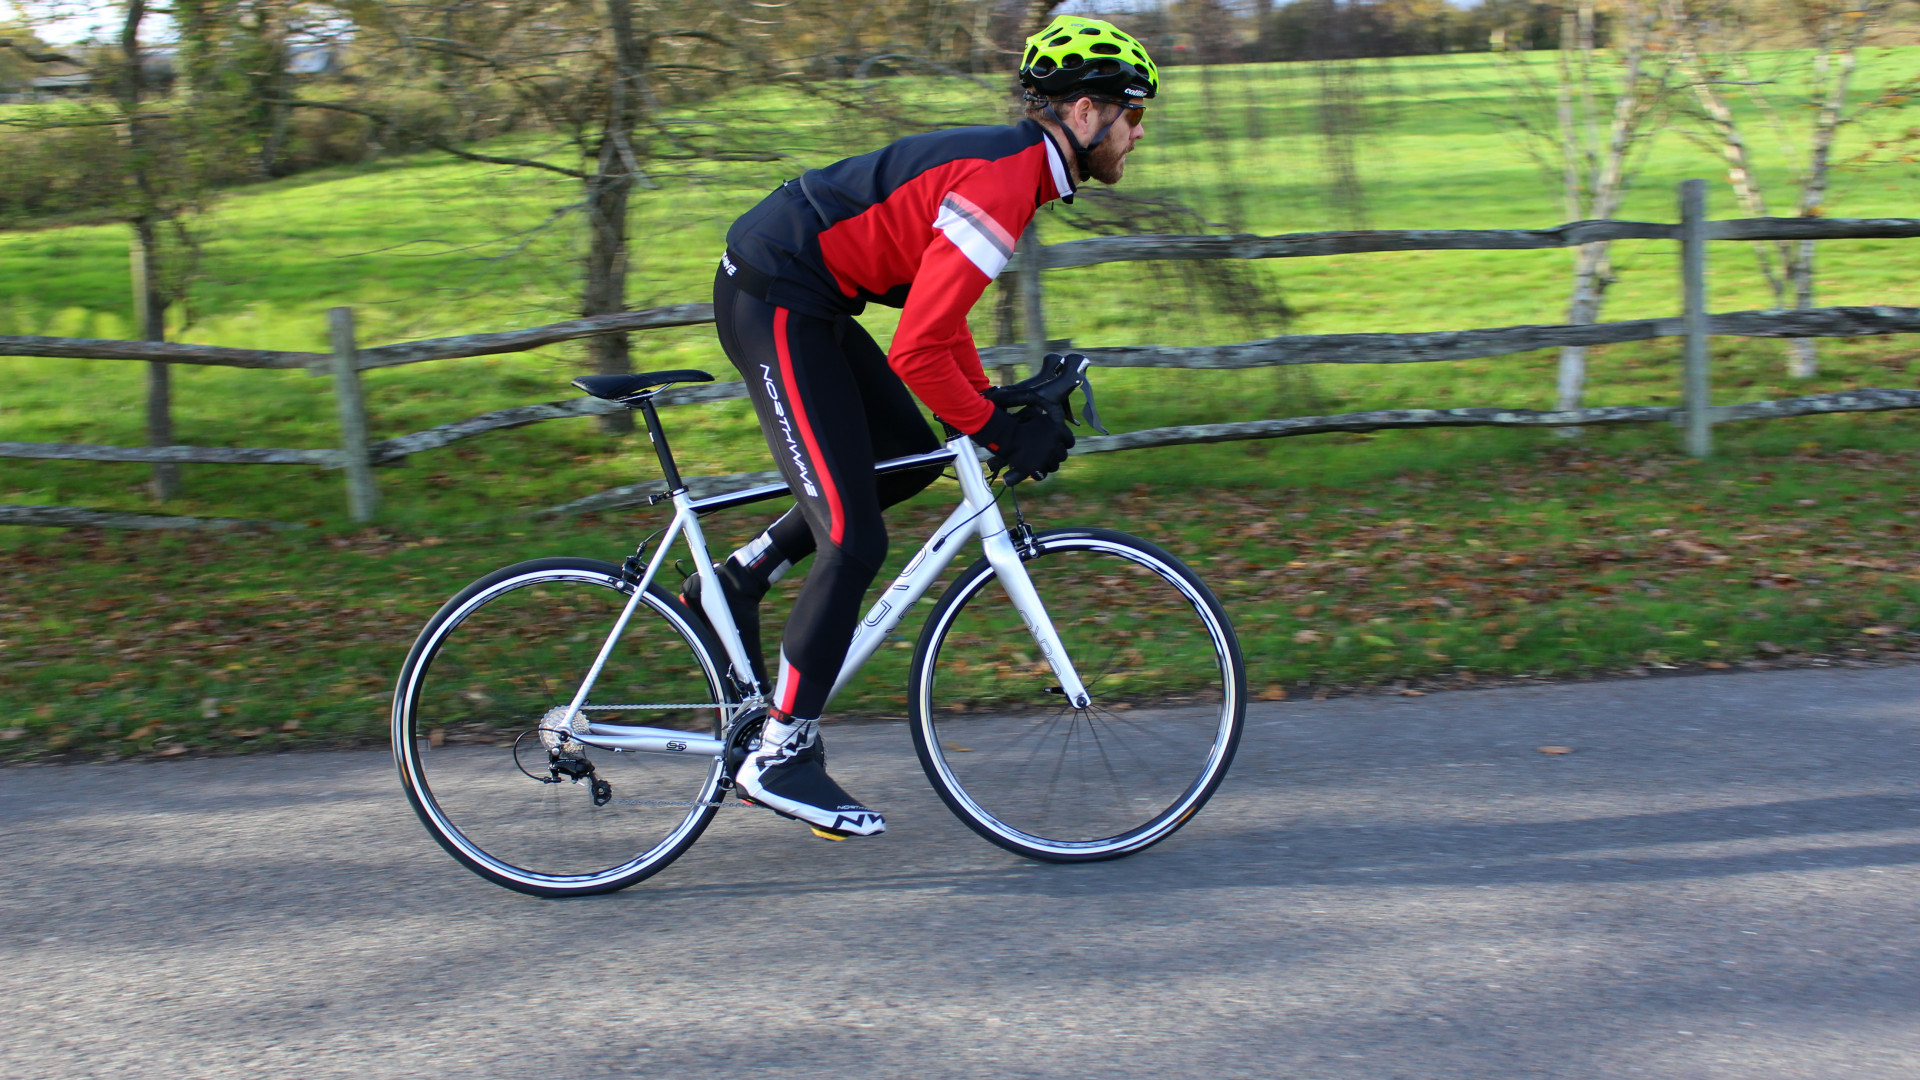 Male cyclist riding his Orro Bike on the Steyning Bostal Strava route with his cycling gear on